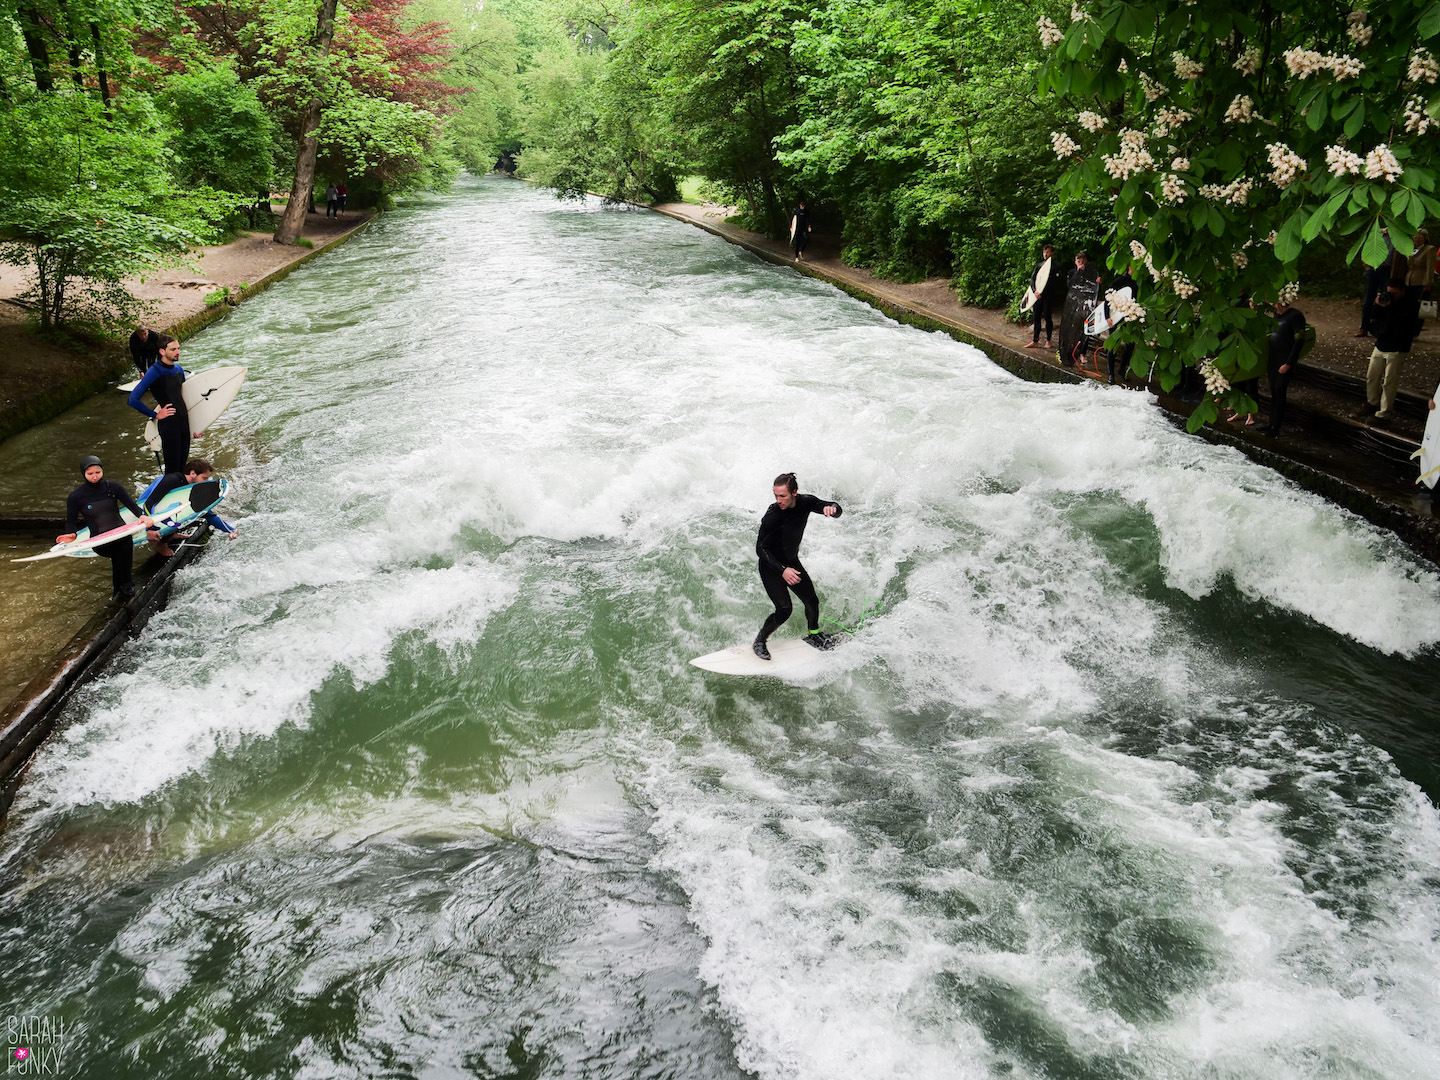 River surfing in the English Gardens